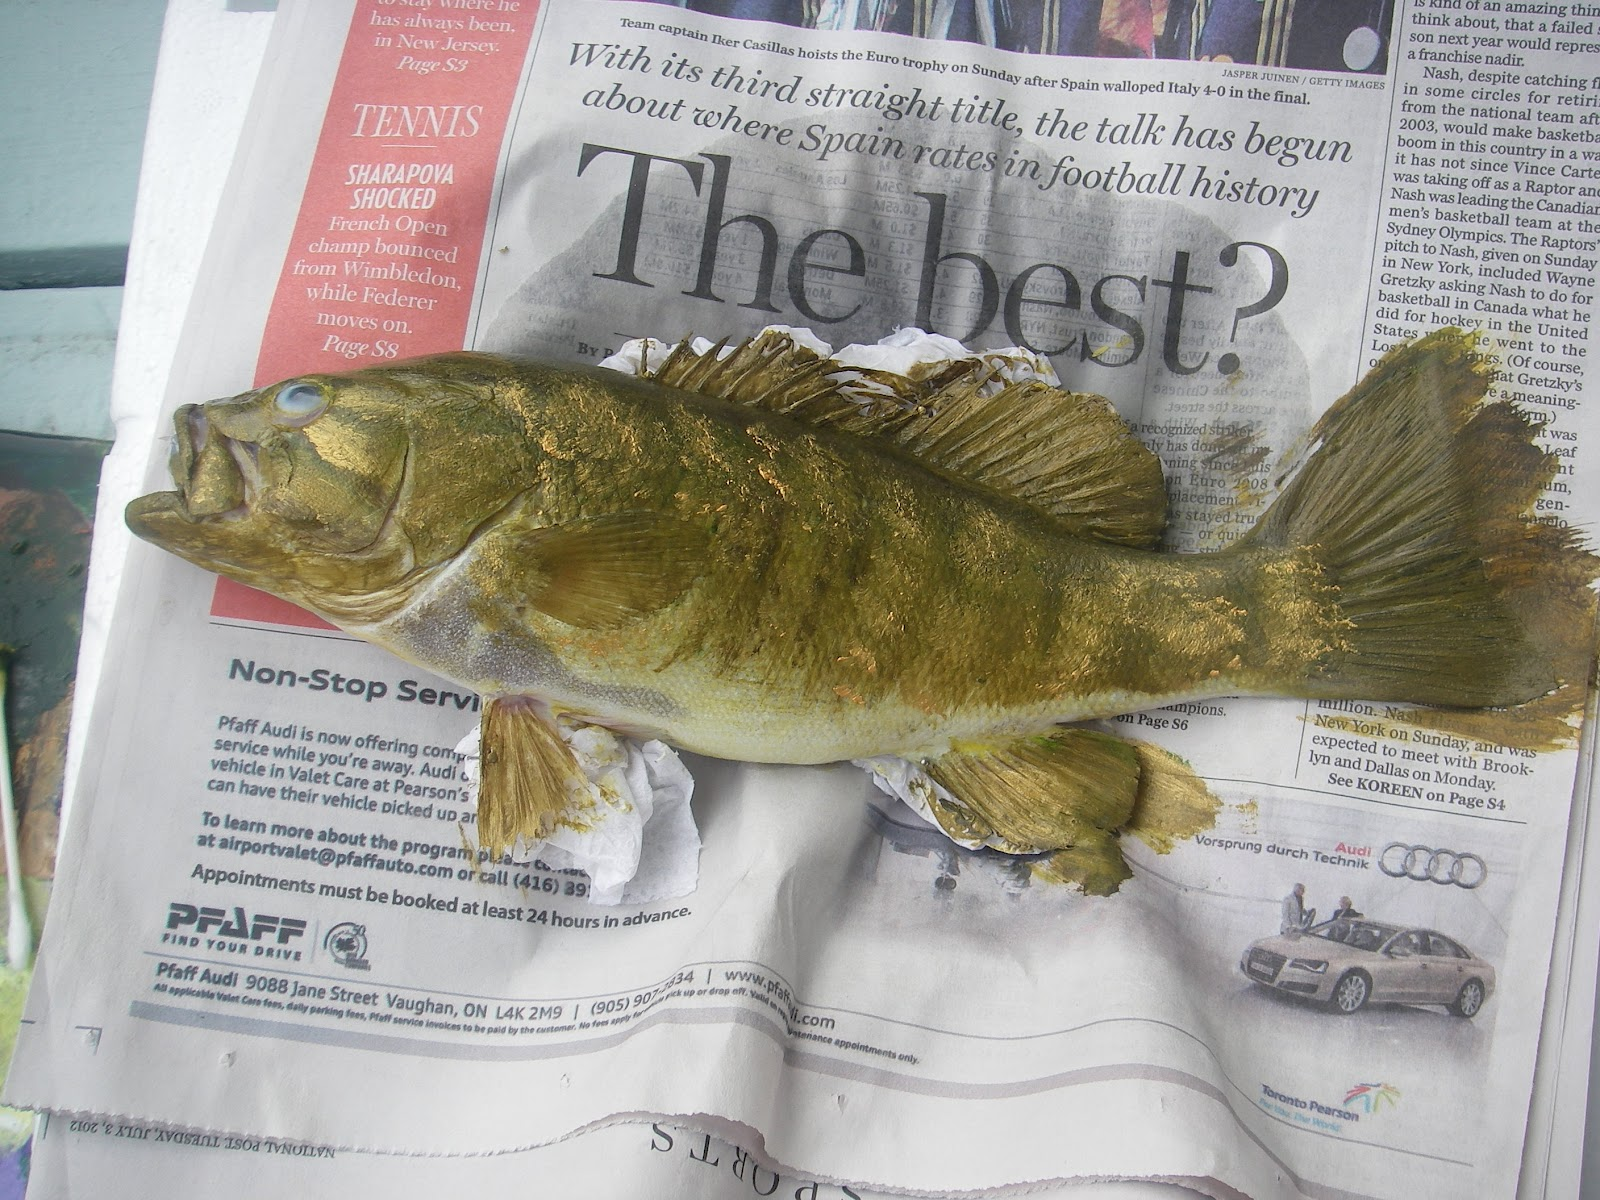 smallmouth bass research paper Phylogeography of smallmouth bass (micropterus dolomieu) and comparative myology of the black bass (micropterus, centrarchidae) william calvin borden bachelor of science in zoology.